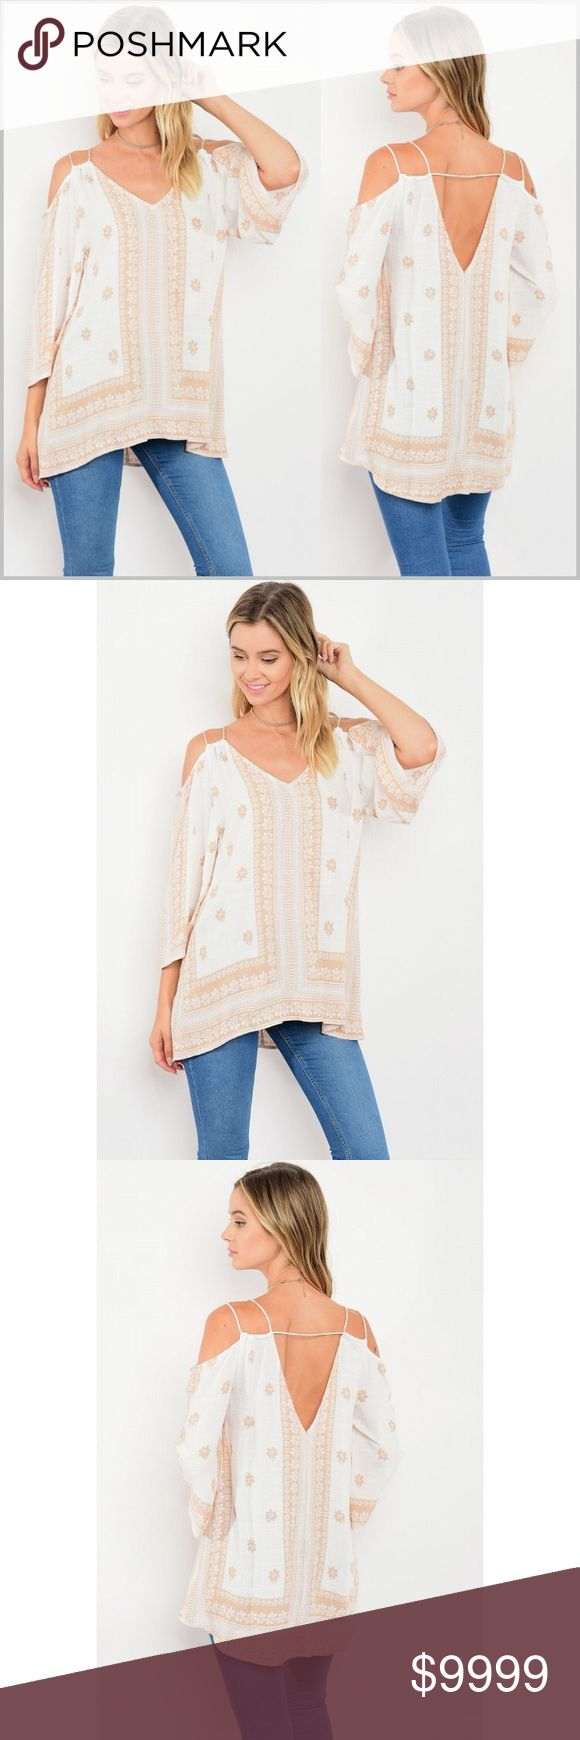 🆕COMING SOON🆕 Arriving by Friday July 14 Coming soon!   Should arrive by Friday July 14th.   Comment to reserve your size. Like to be notified of arrival.   Peach/Tan on white, deep V-back, open shoulder tunic.   Will be available in Small, Medium and Large.   Price will not exceed $34. Tops